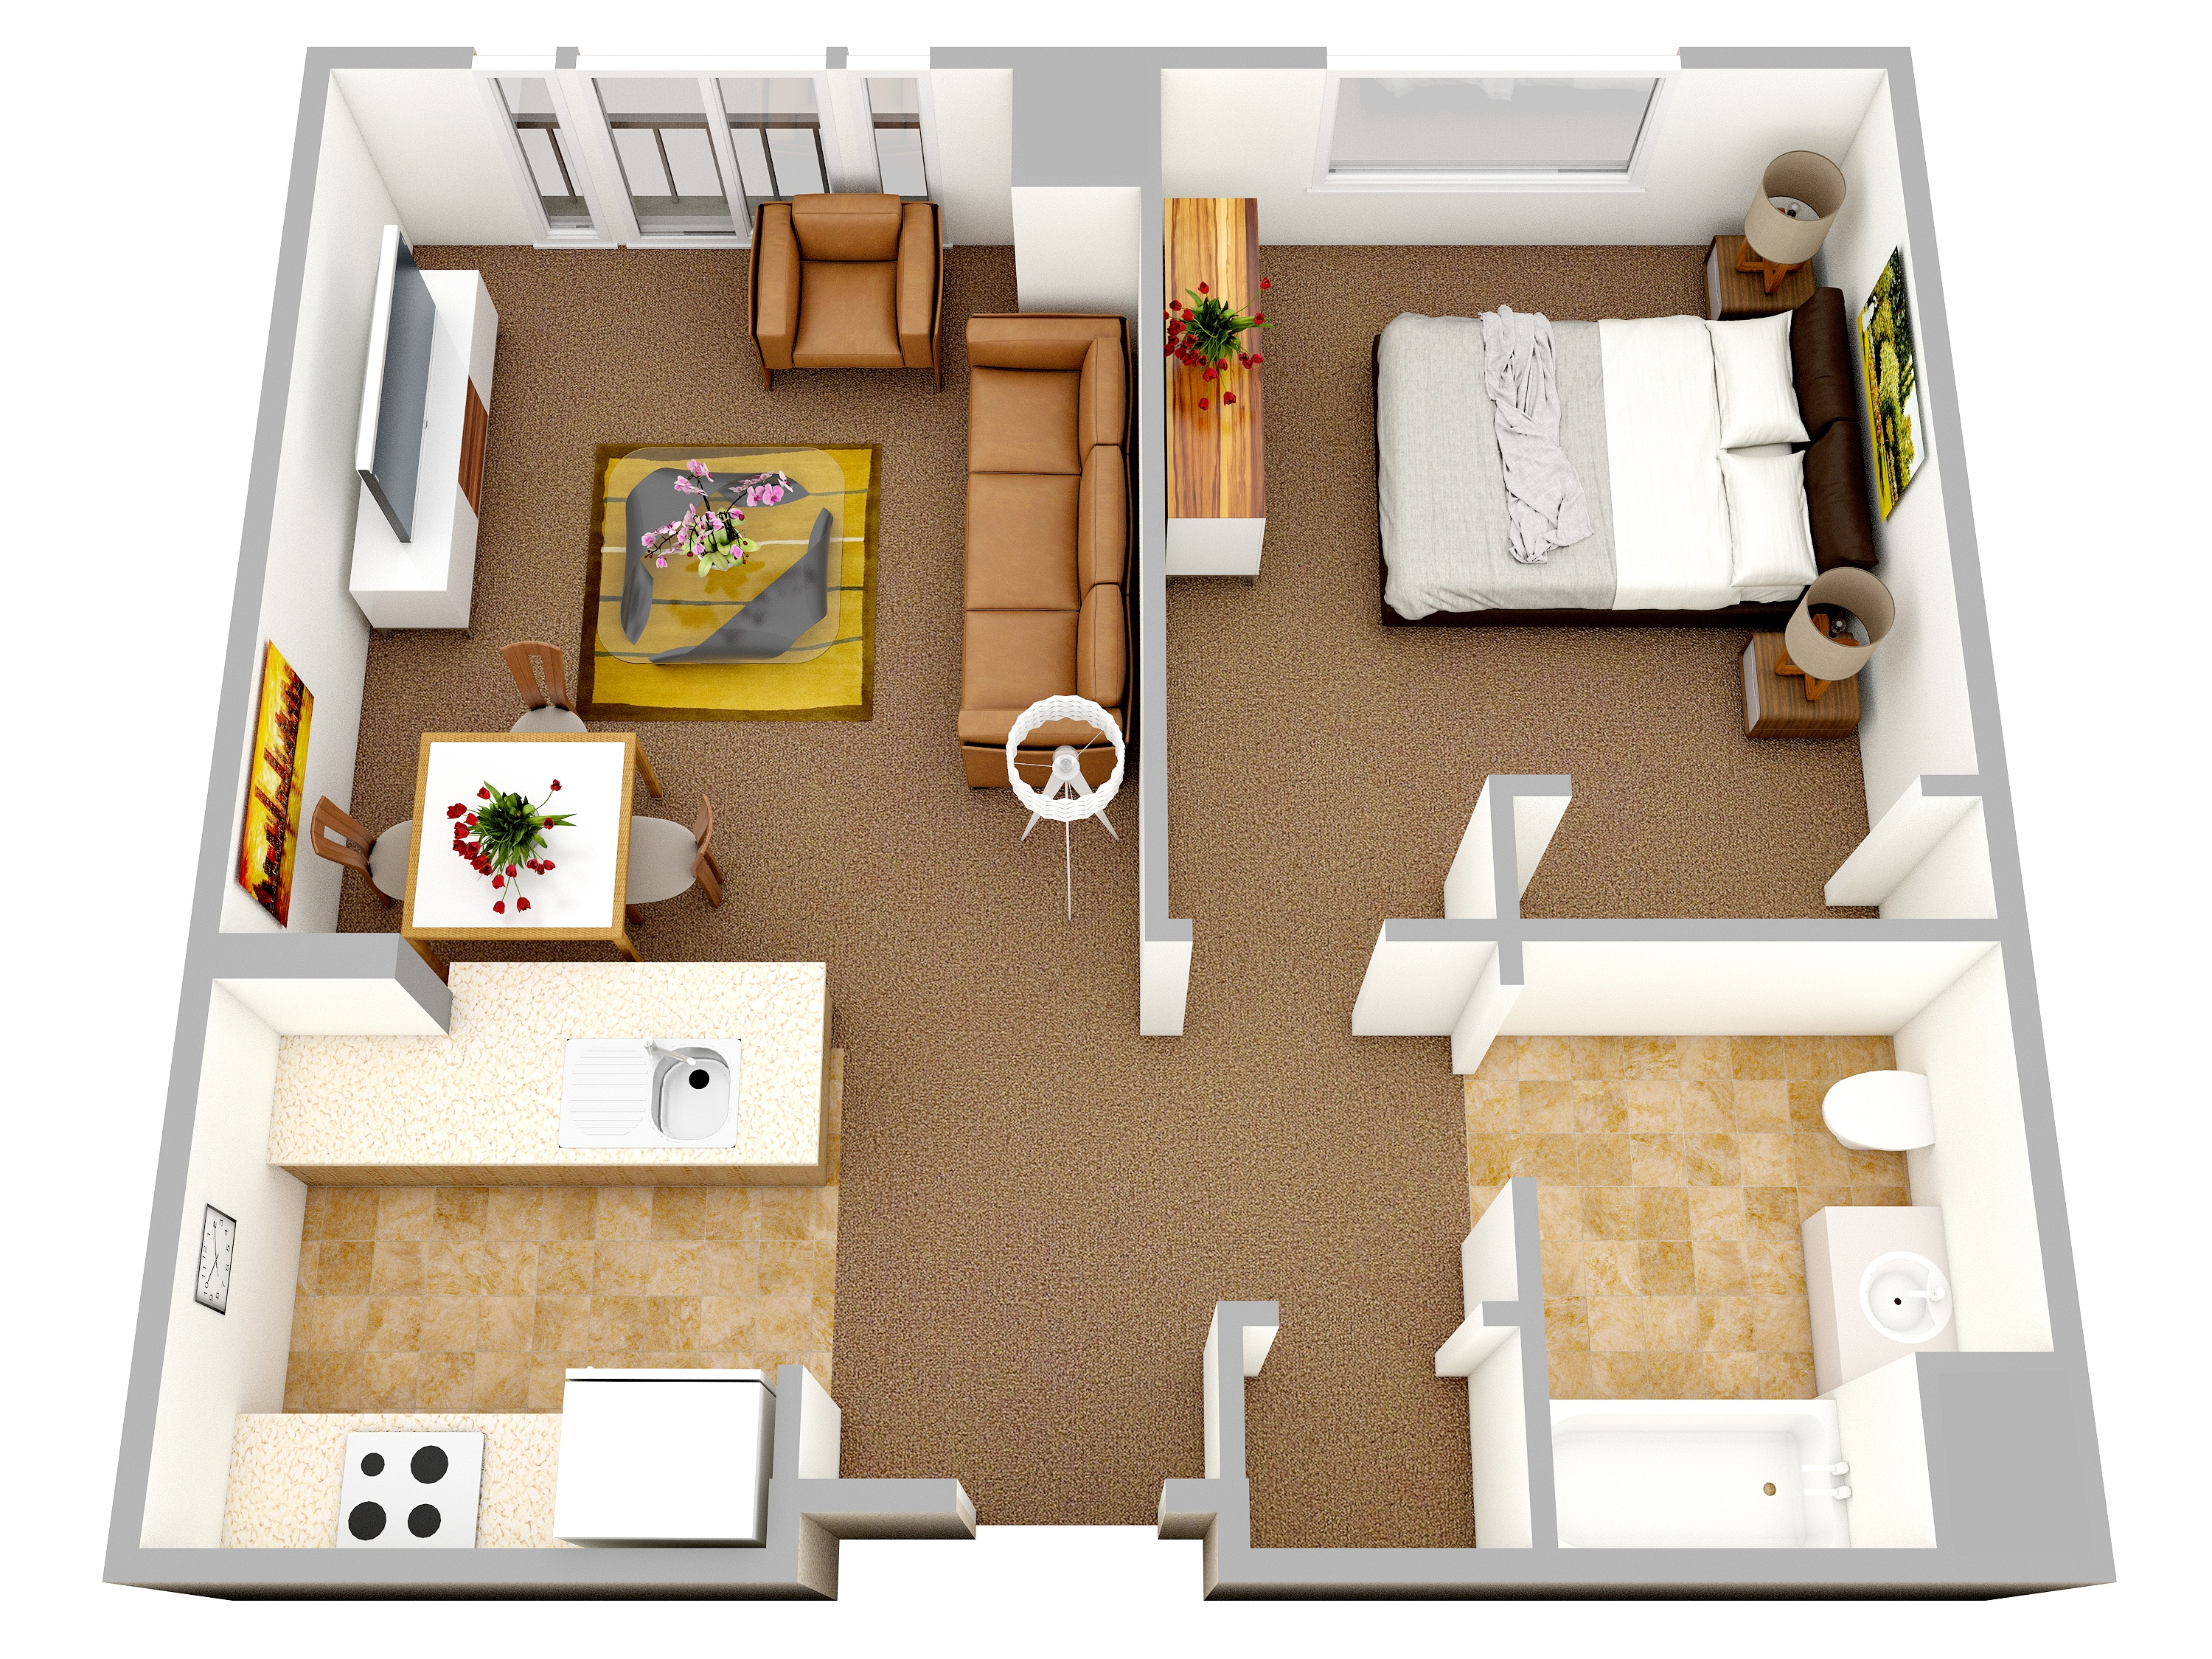 47 planos de apartamentos de 01 dormitorio tikinti for Mother daughter house design